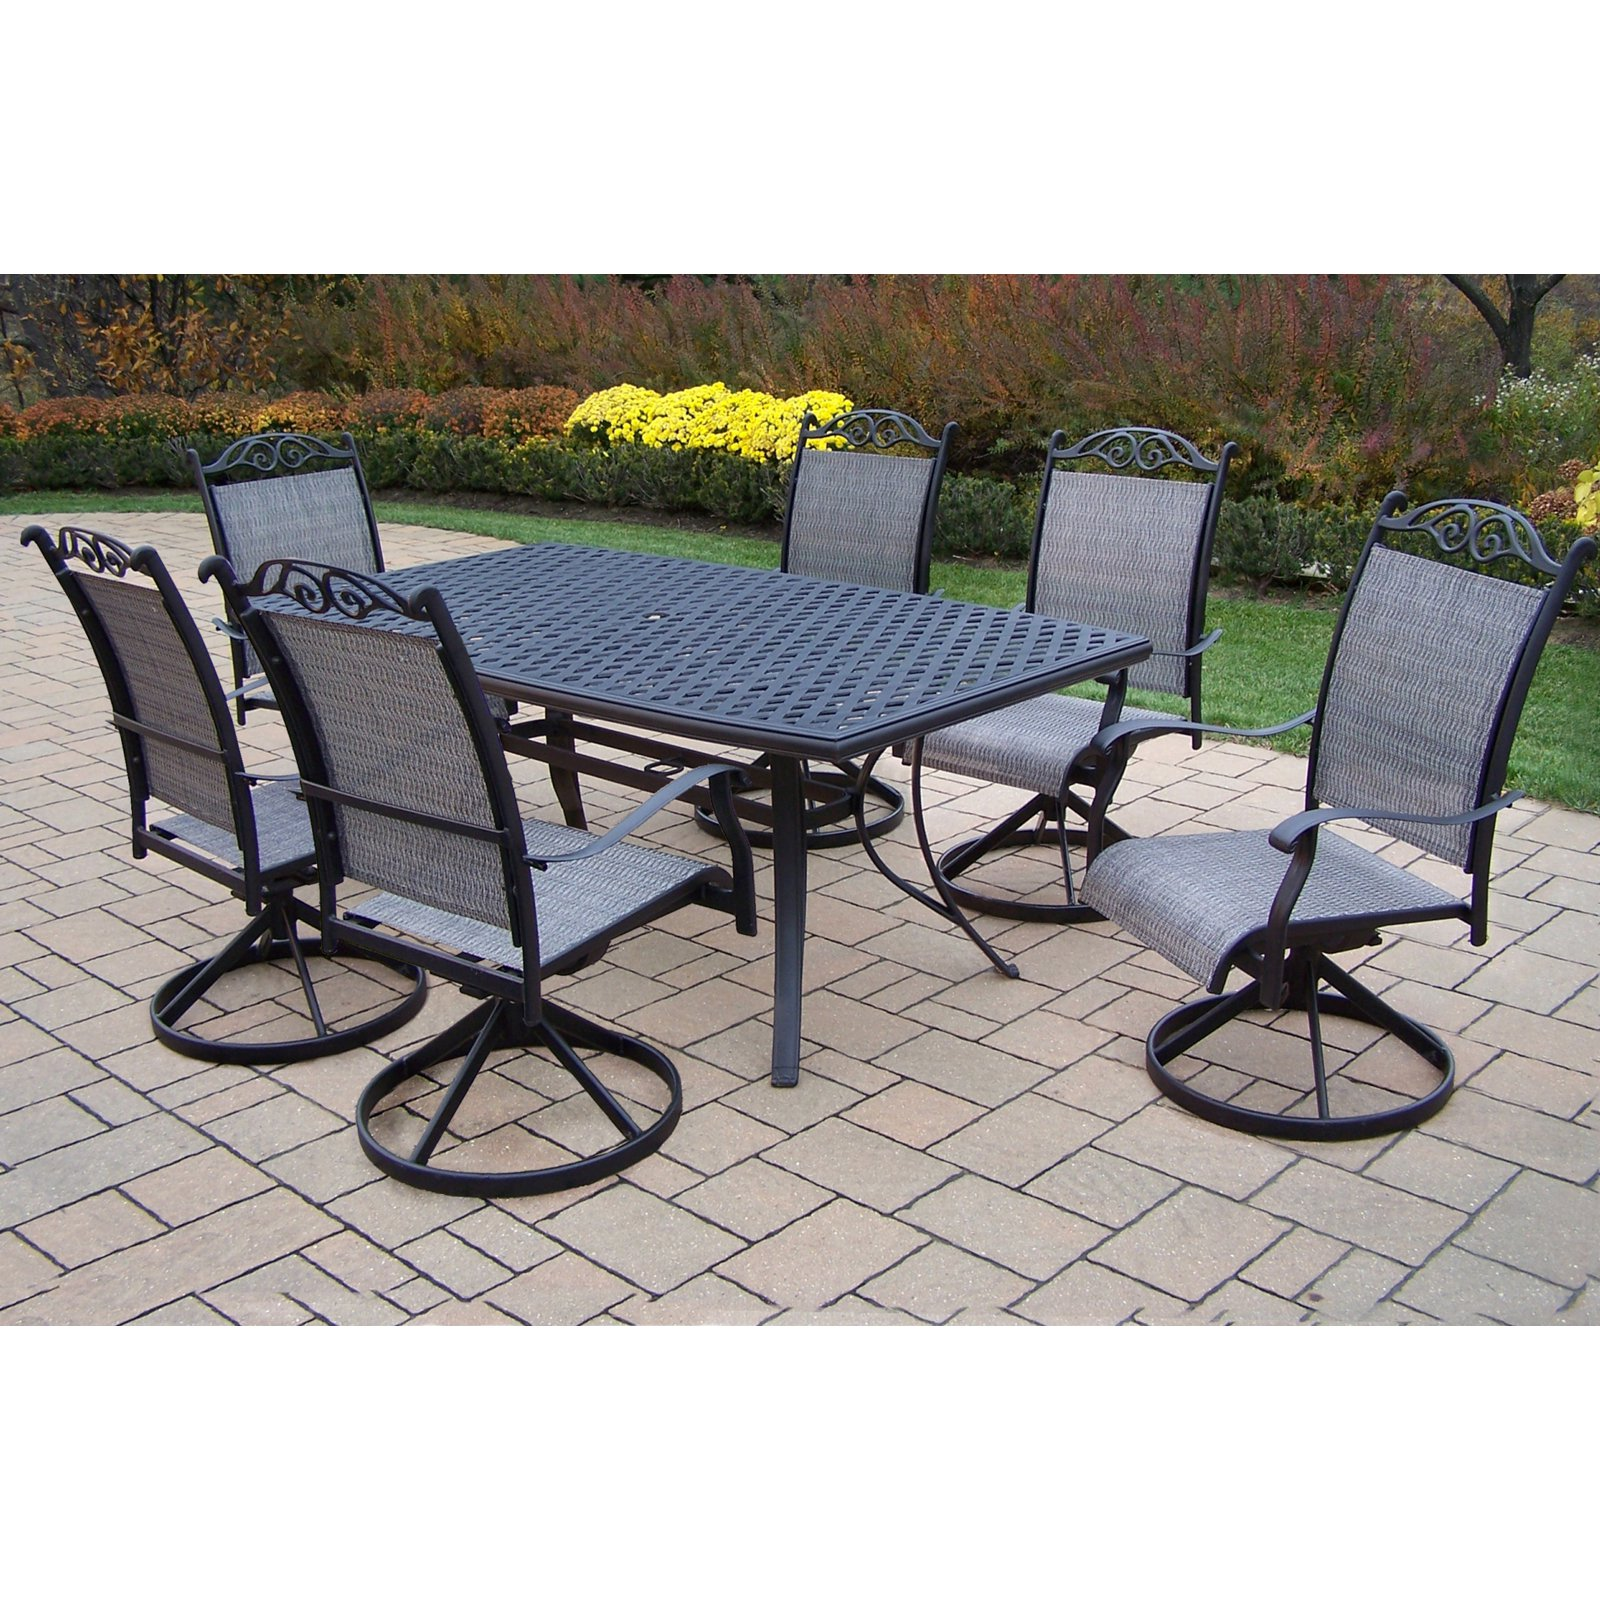 Oakland Living Cascade Patio Dining Room Set with Boat Shape Table Seats 6 by Oakland Living Corporation